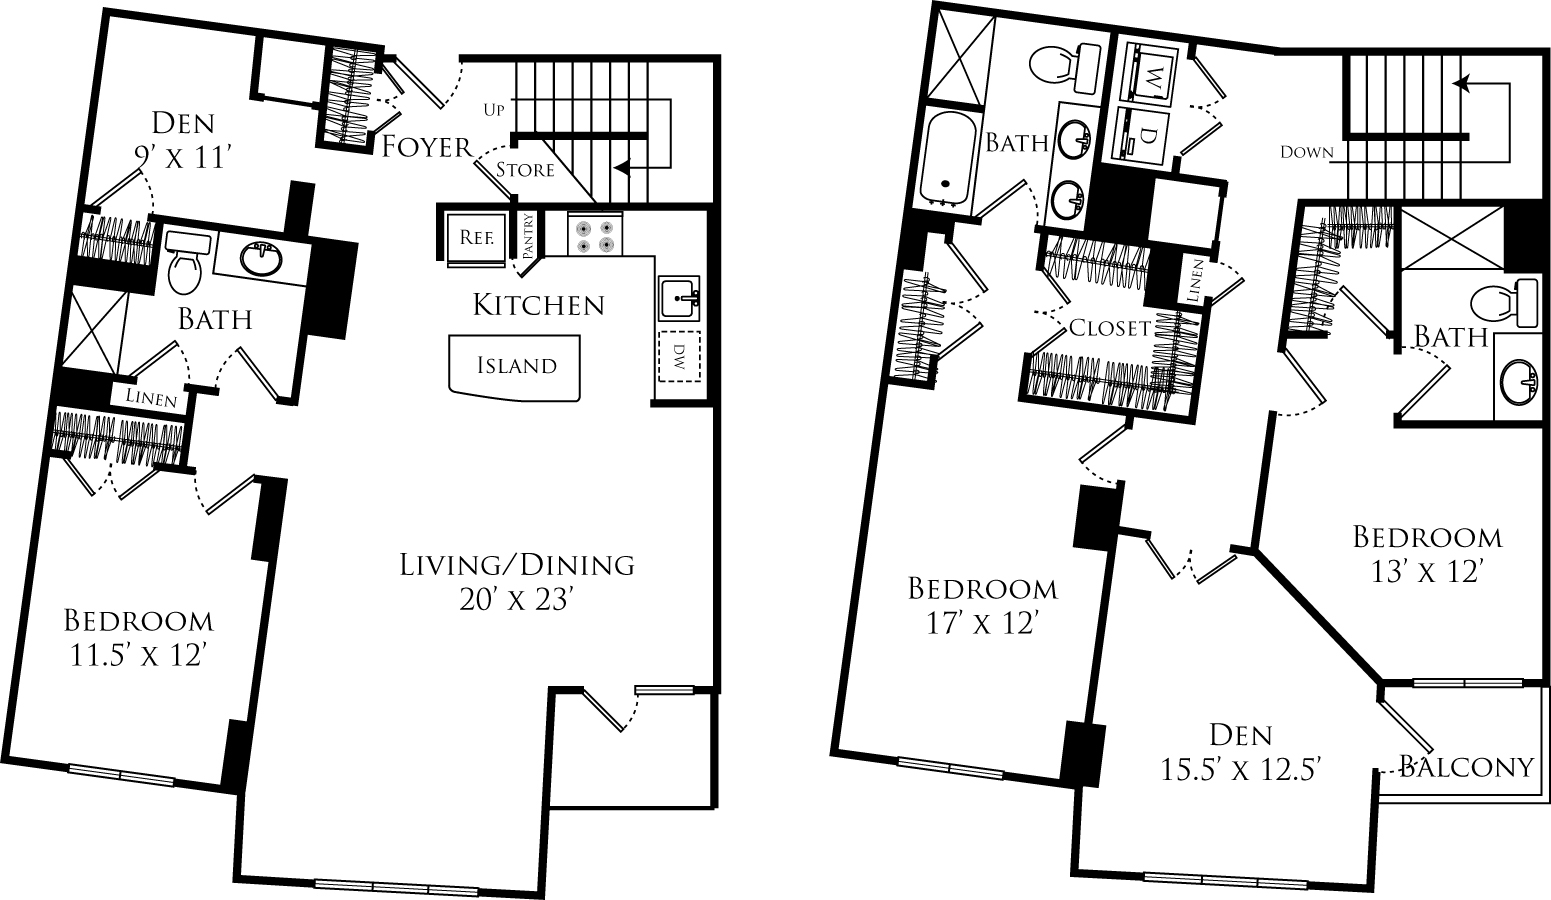 D3A + den floor plan is 3 beds, 3 baths and is 2300 square feet